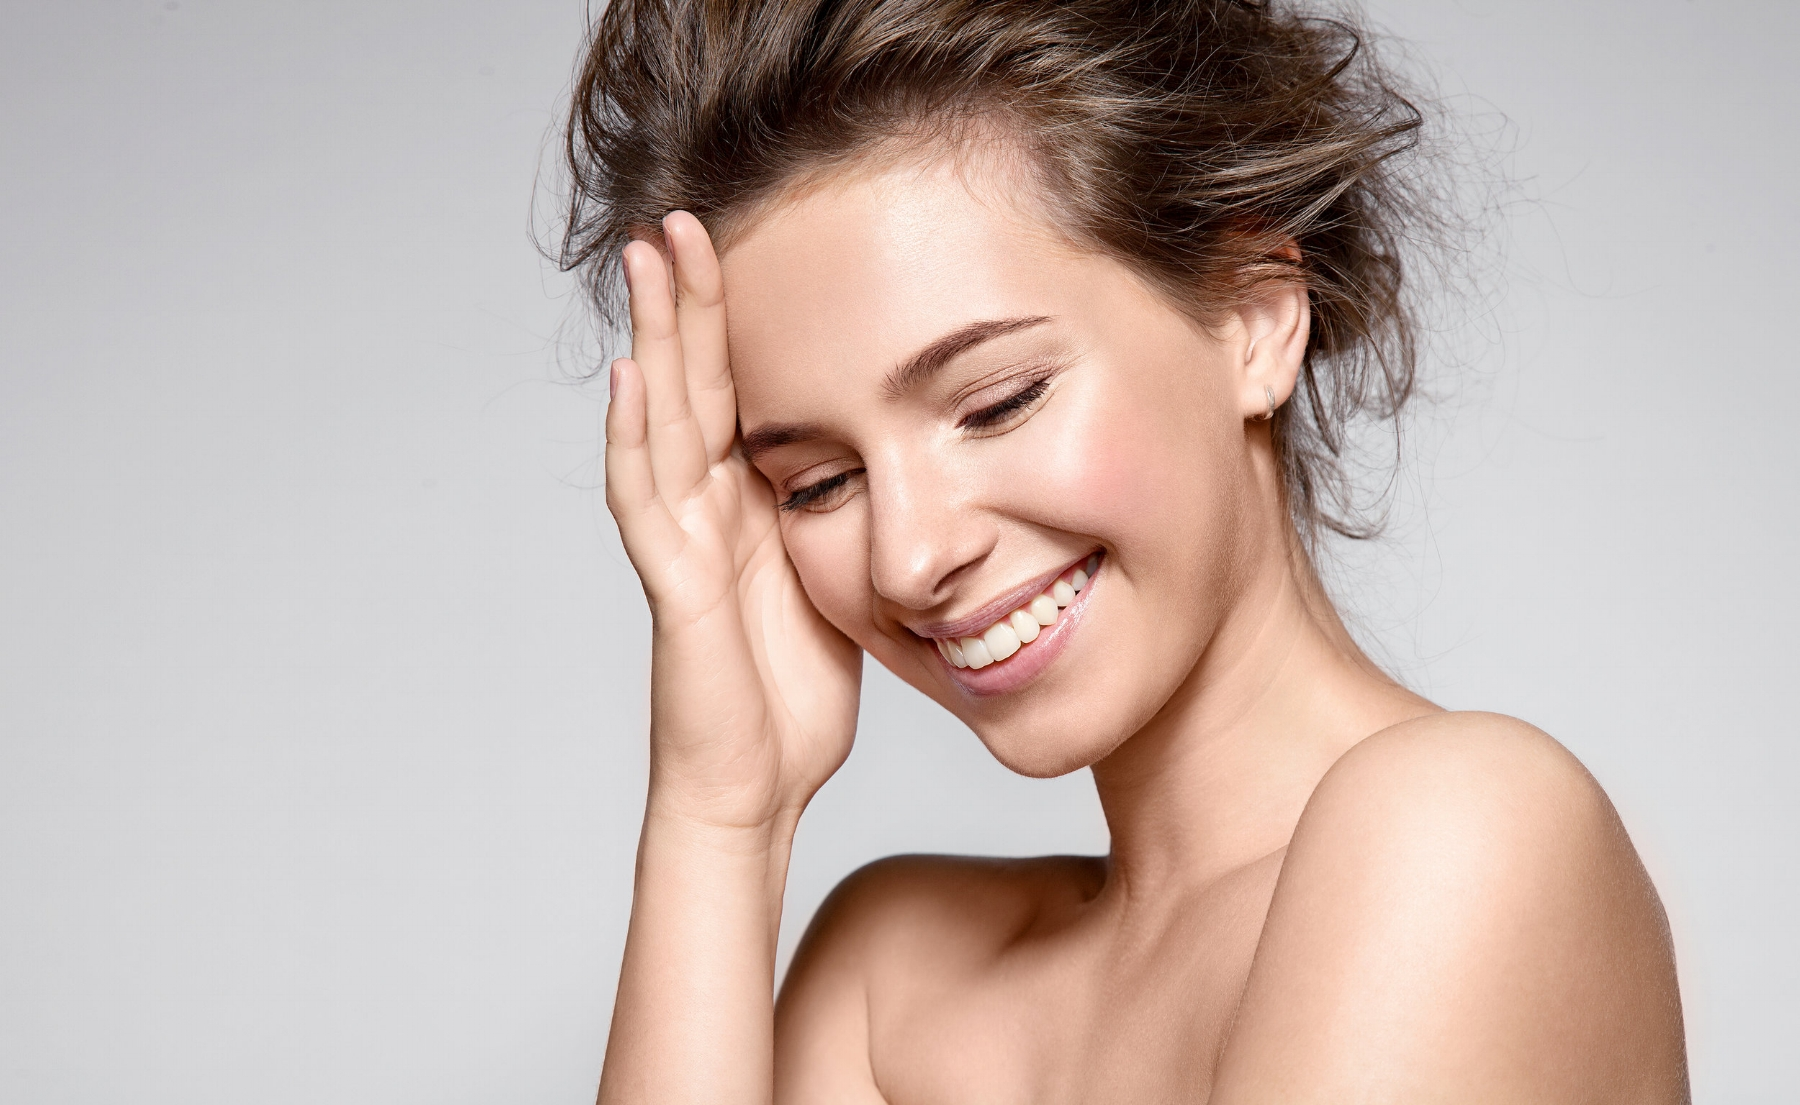 Medical Grade Skincare at Jennifer Injectables in Cary